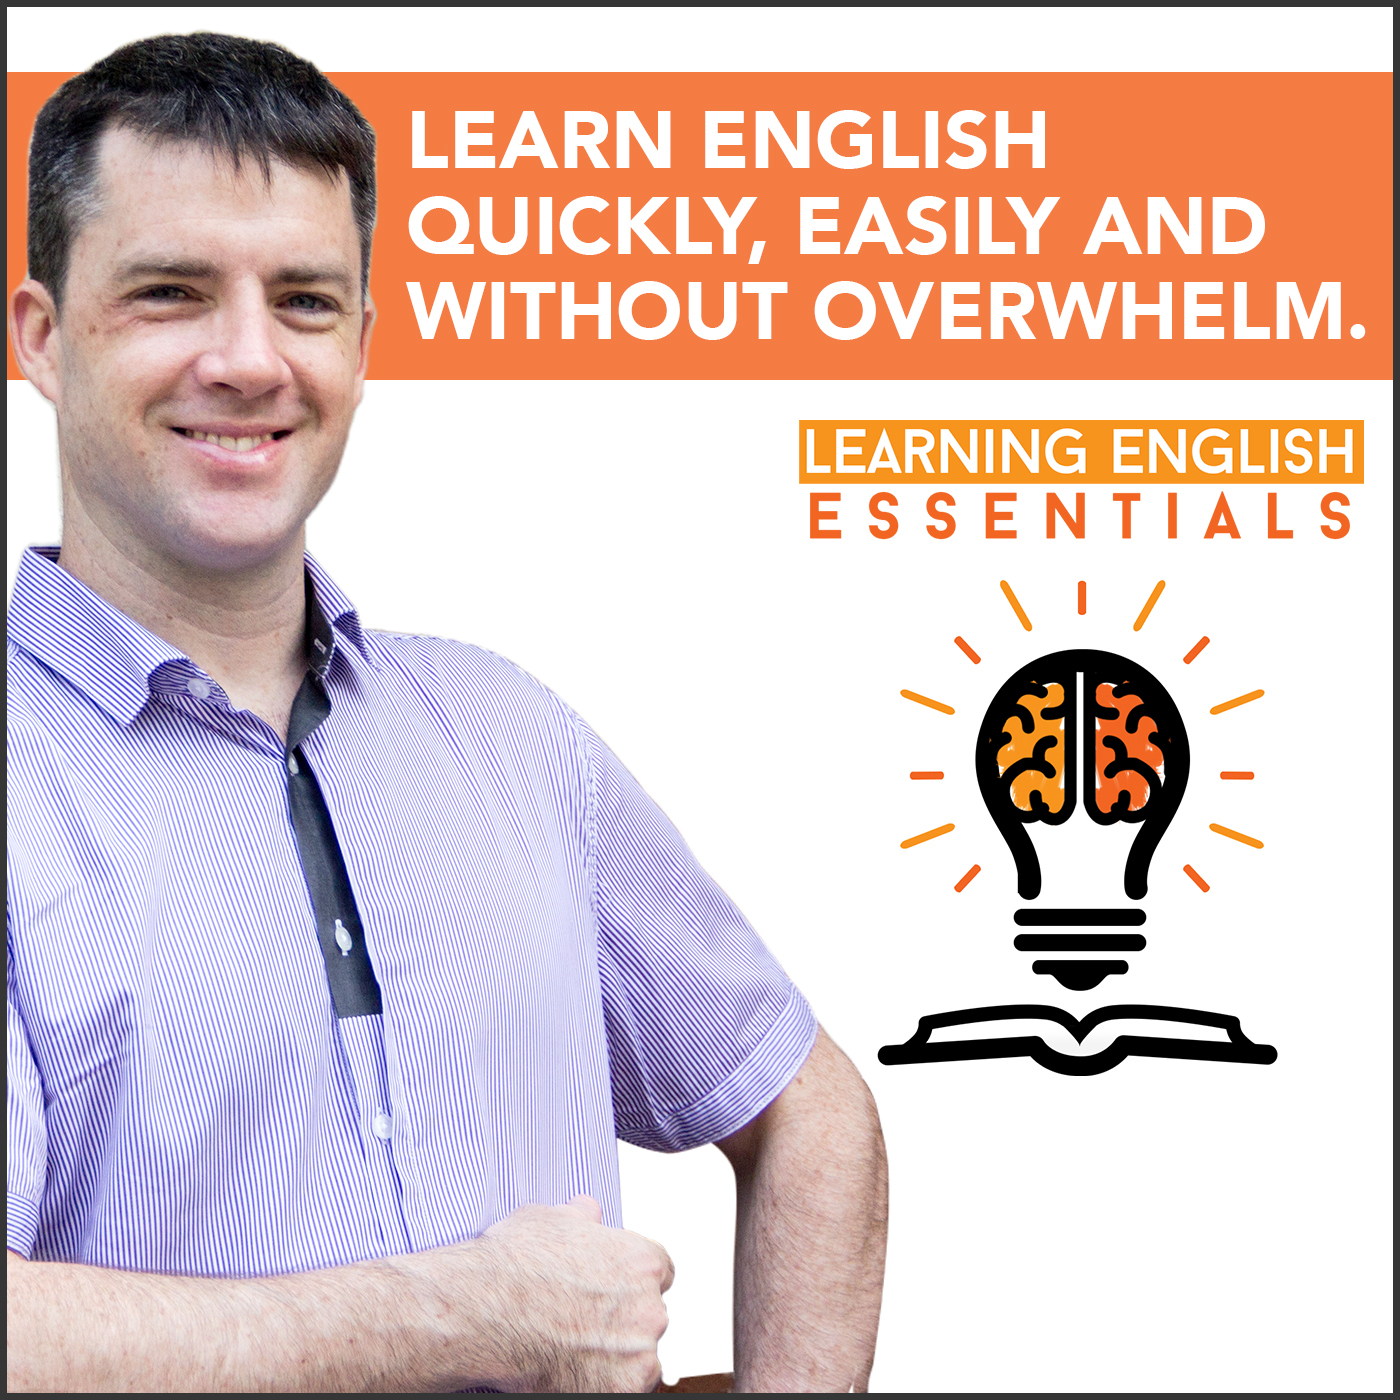 Learning English Essentials Podcast